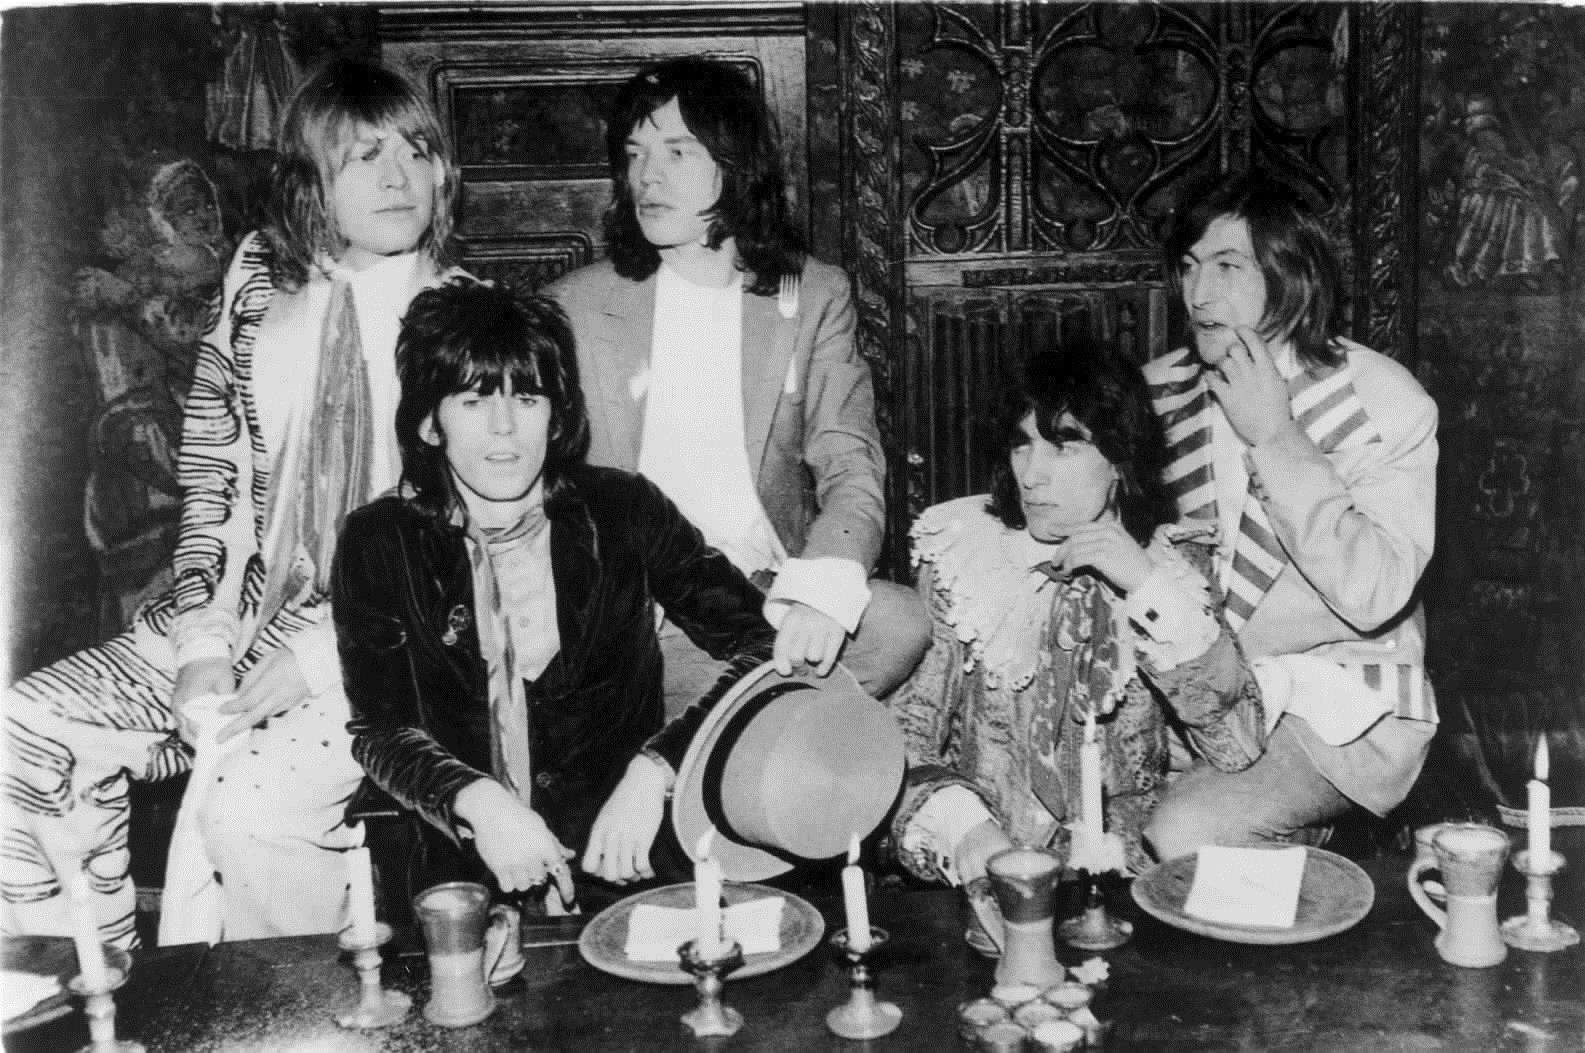 The Rolling Stones, (left to right) Brian Jones, Keith Richards, Mick Jagger, Bill Wyman and Charlie Watts